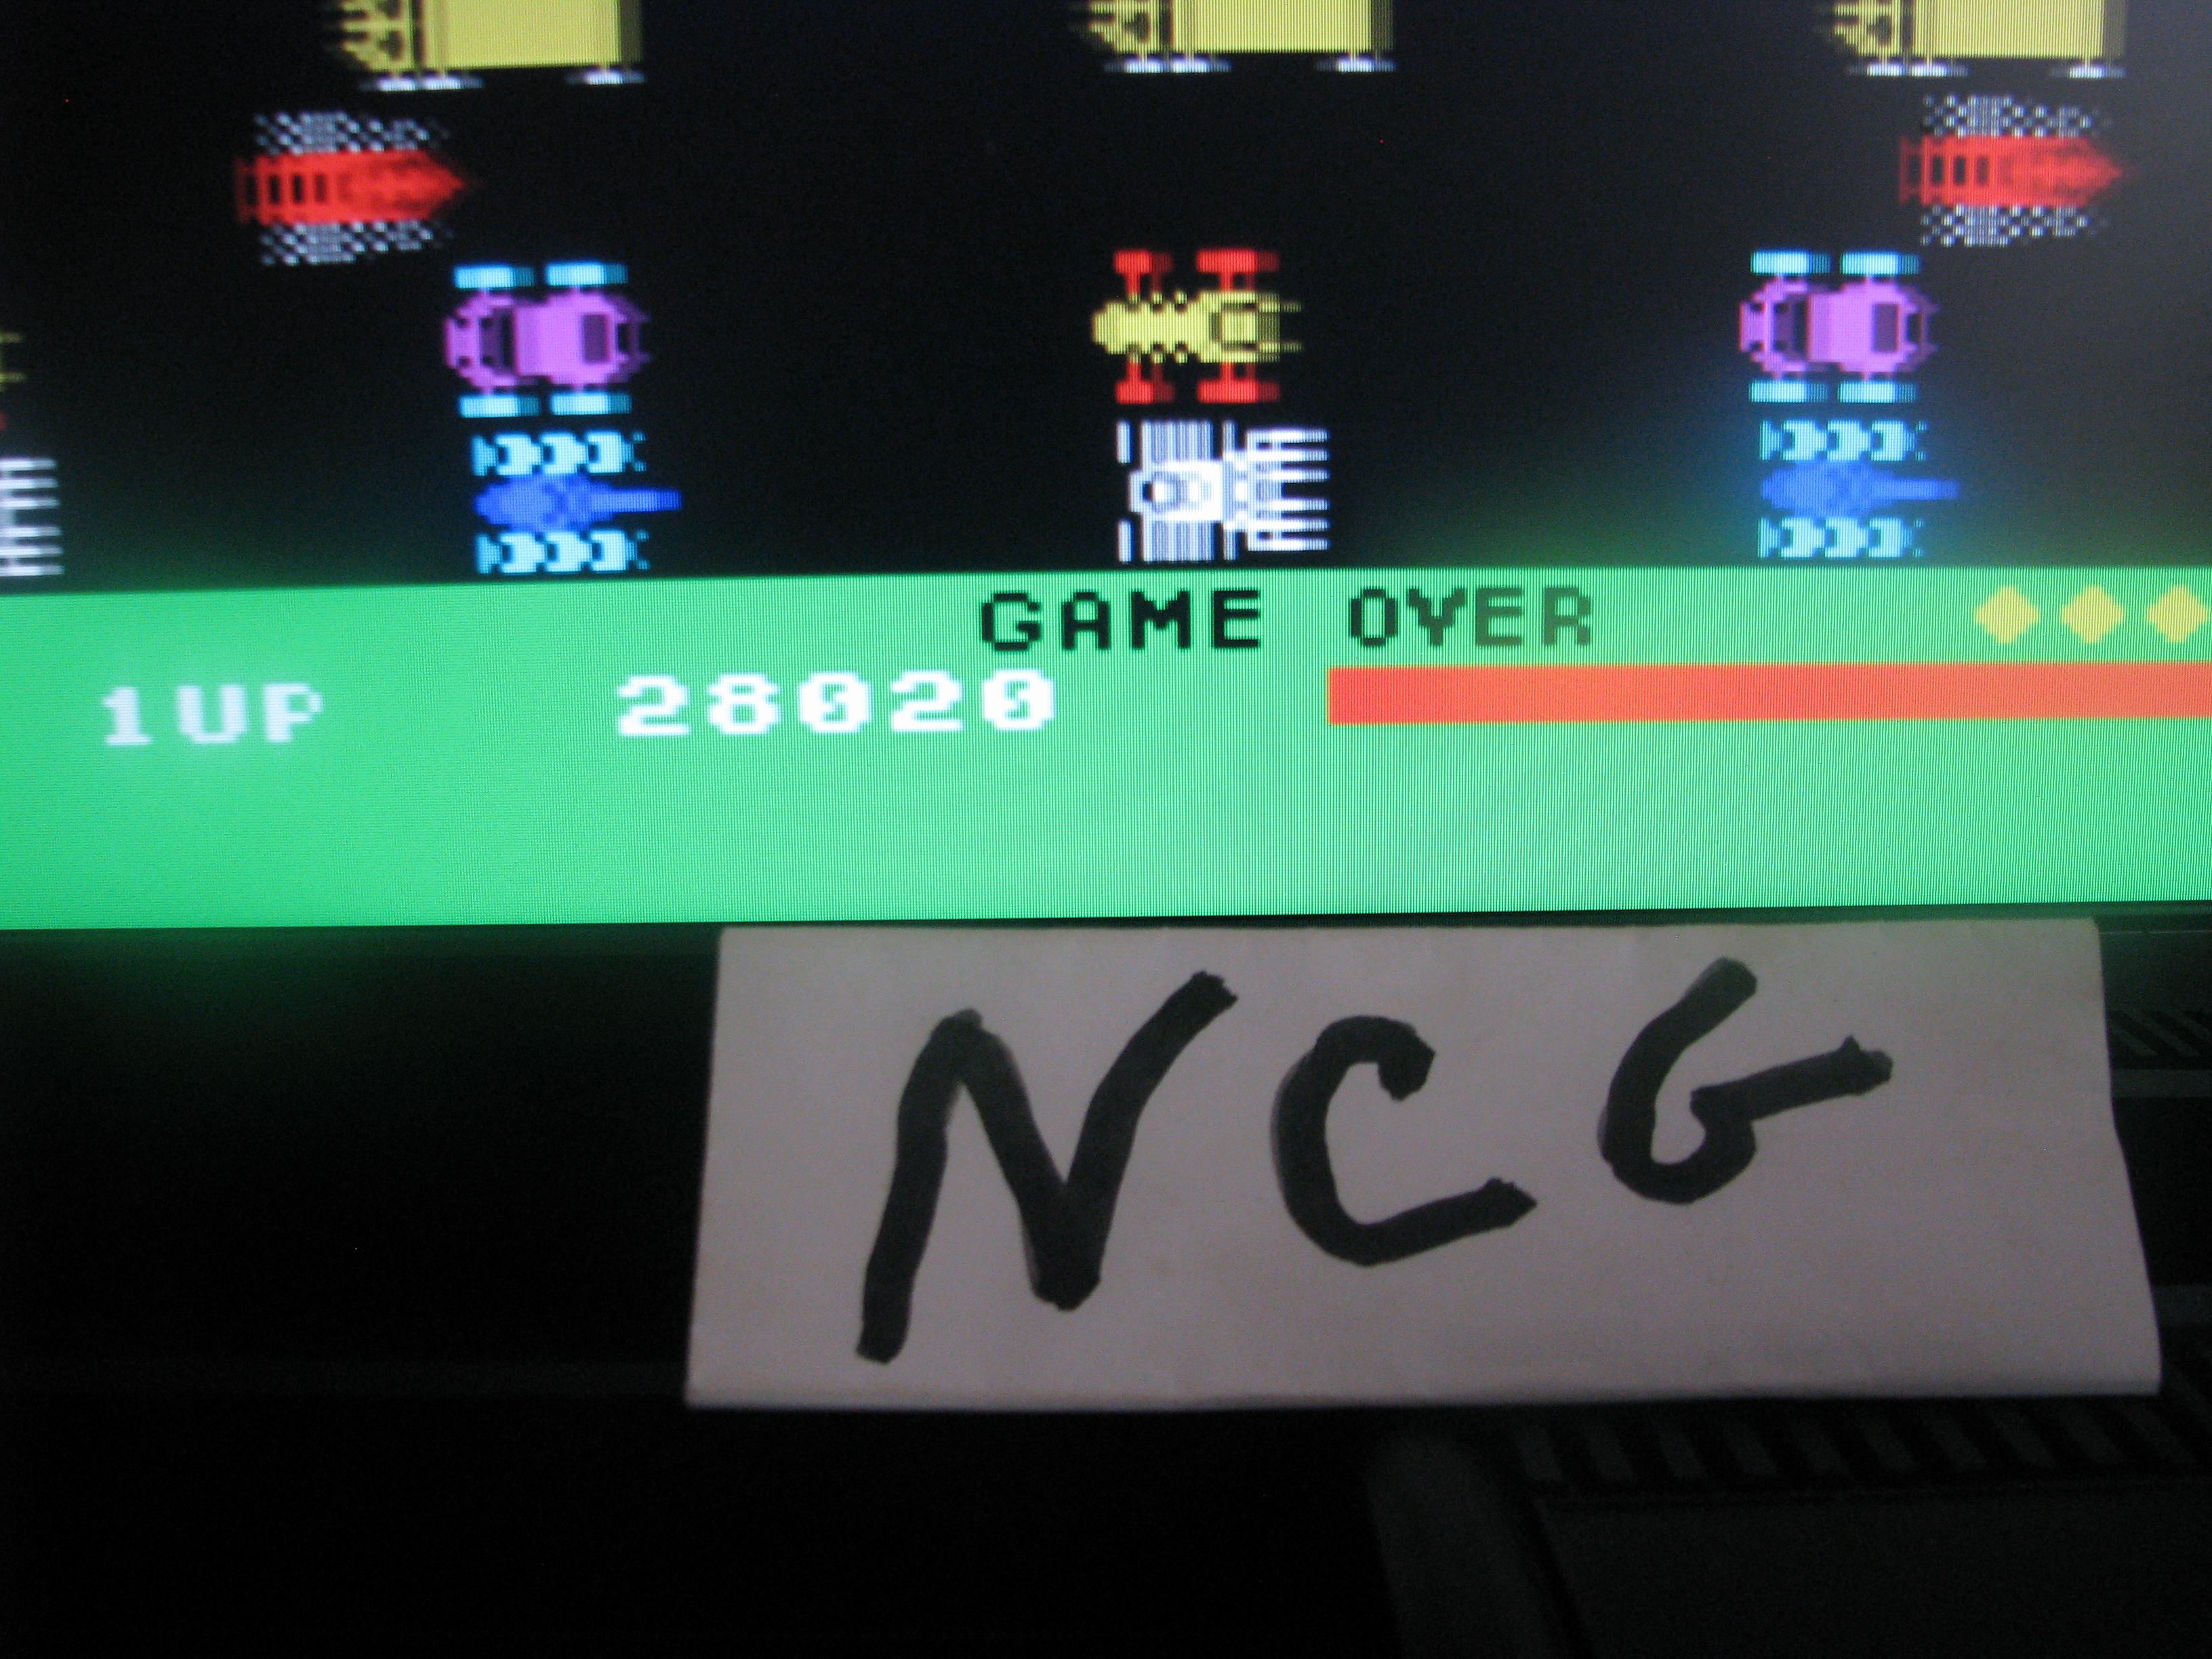 Frogger 28,020 points